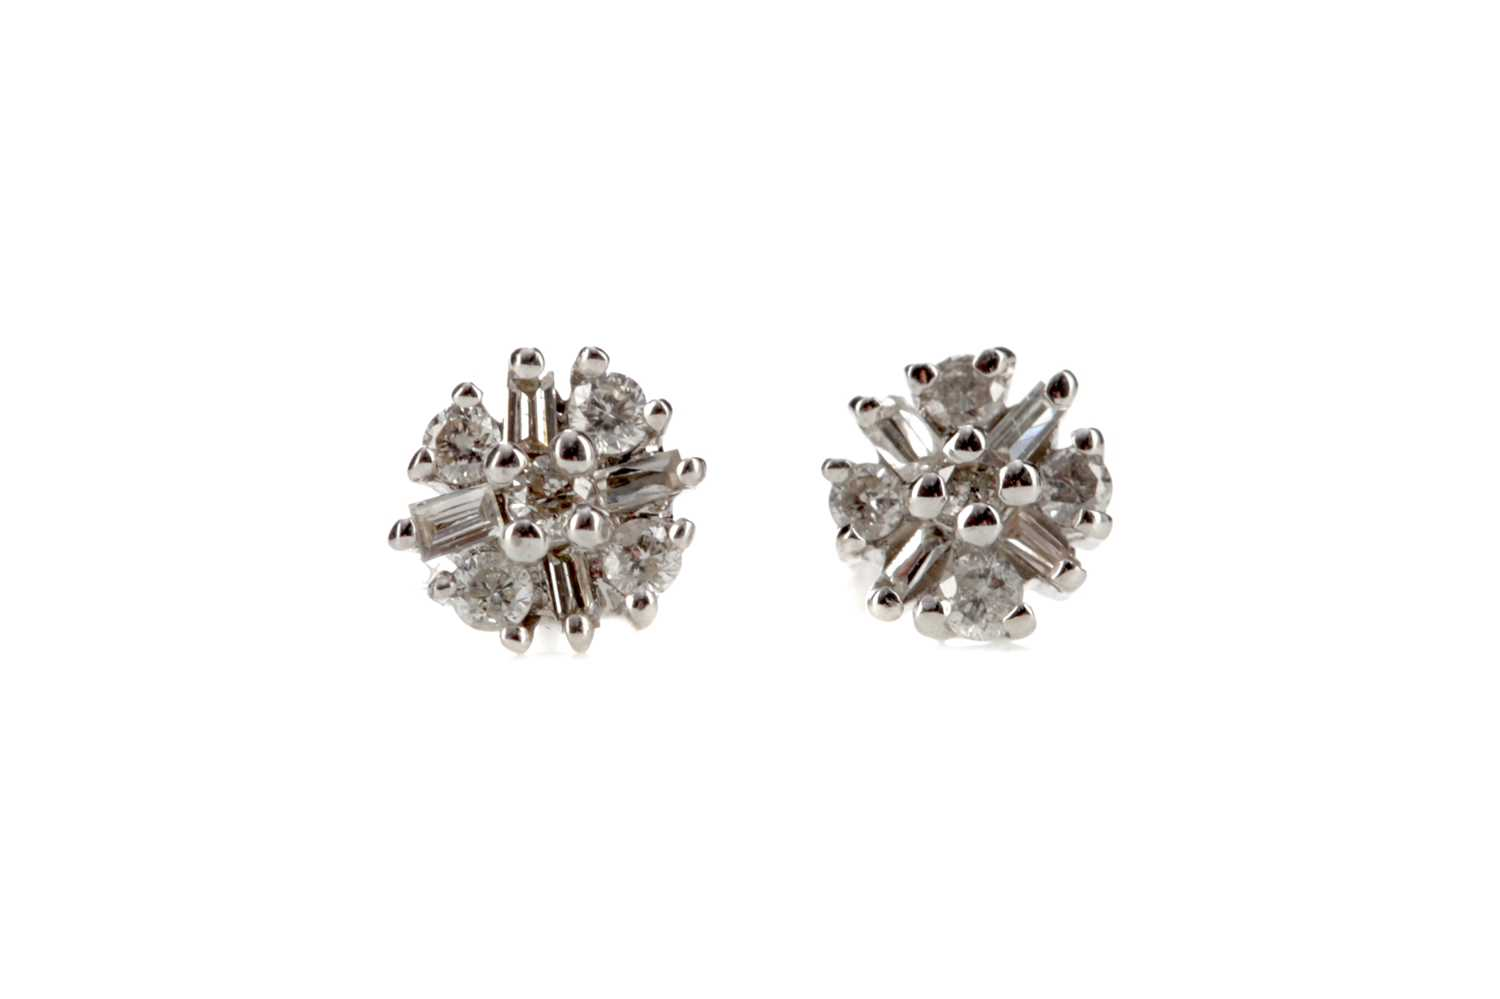 Lot 348 - A PAIR OF DIAMOND STUD EARRINGS